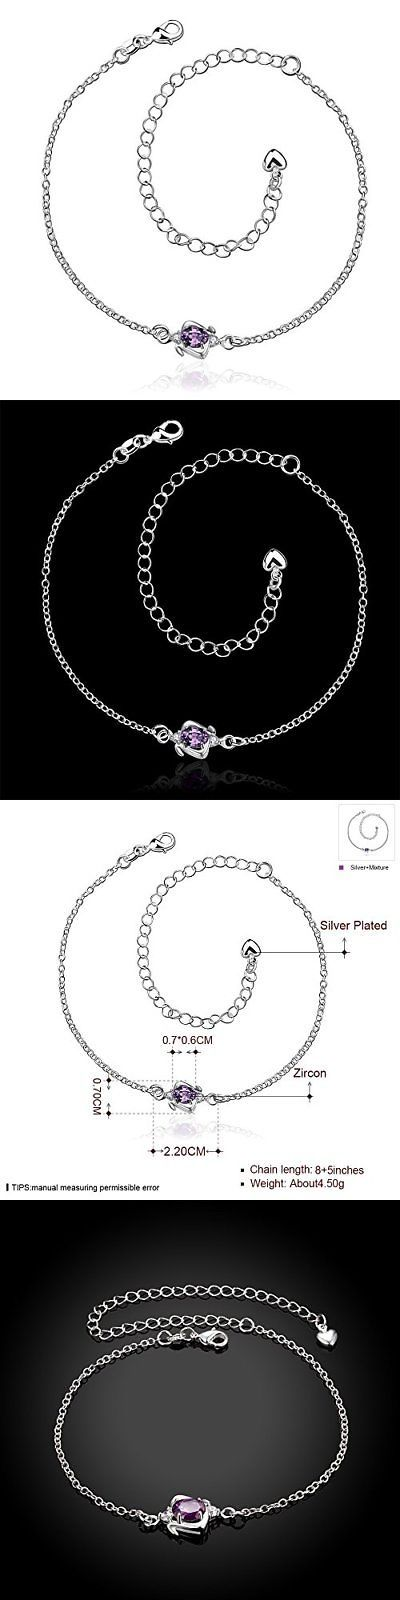 Anklets 110634: Jewelleryclub Womens Anklet Silver Plated Purple Swarovski Elements Crystal -> BUY IT NOW ONLY: $58.19 on eBay!